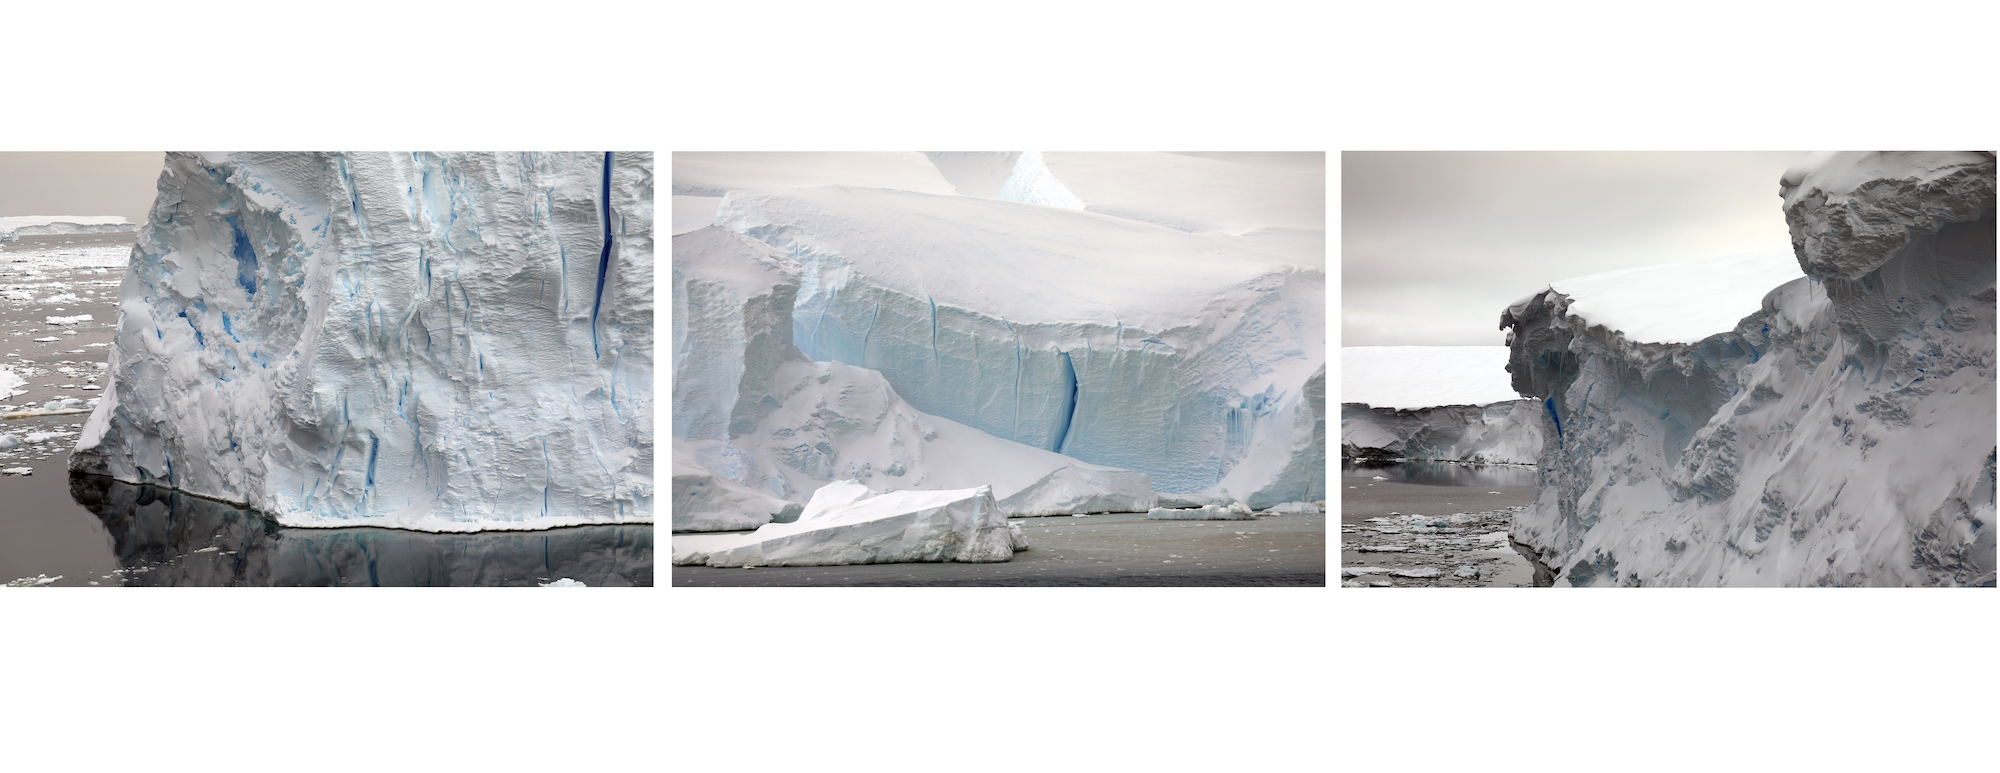 The many faces of Thwaites ice shelf.